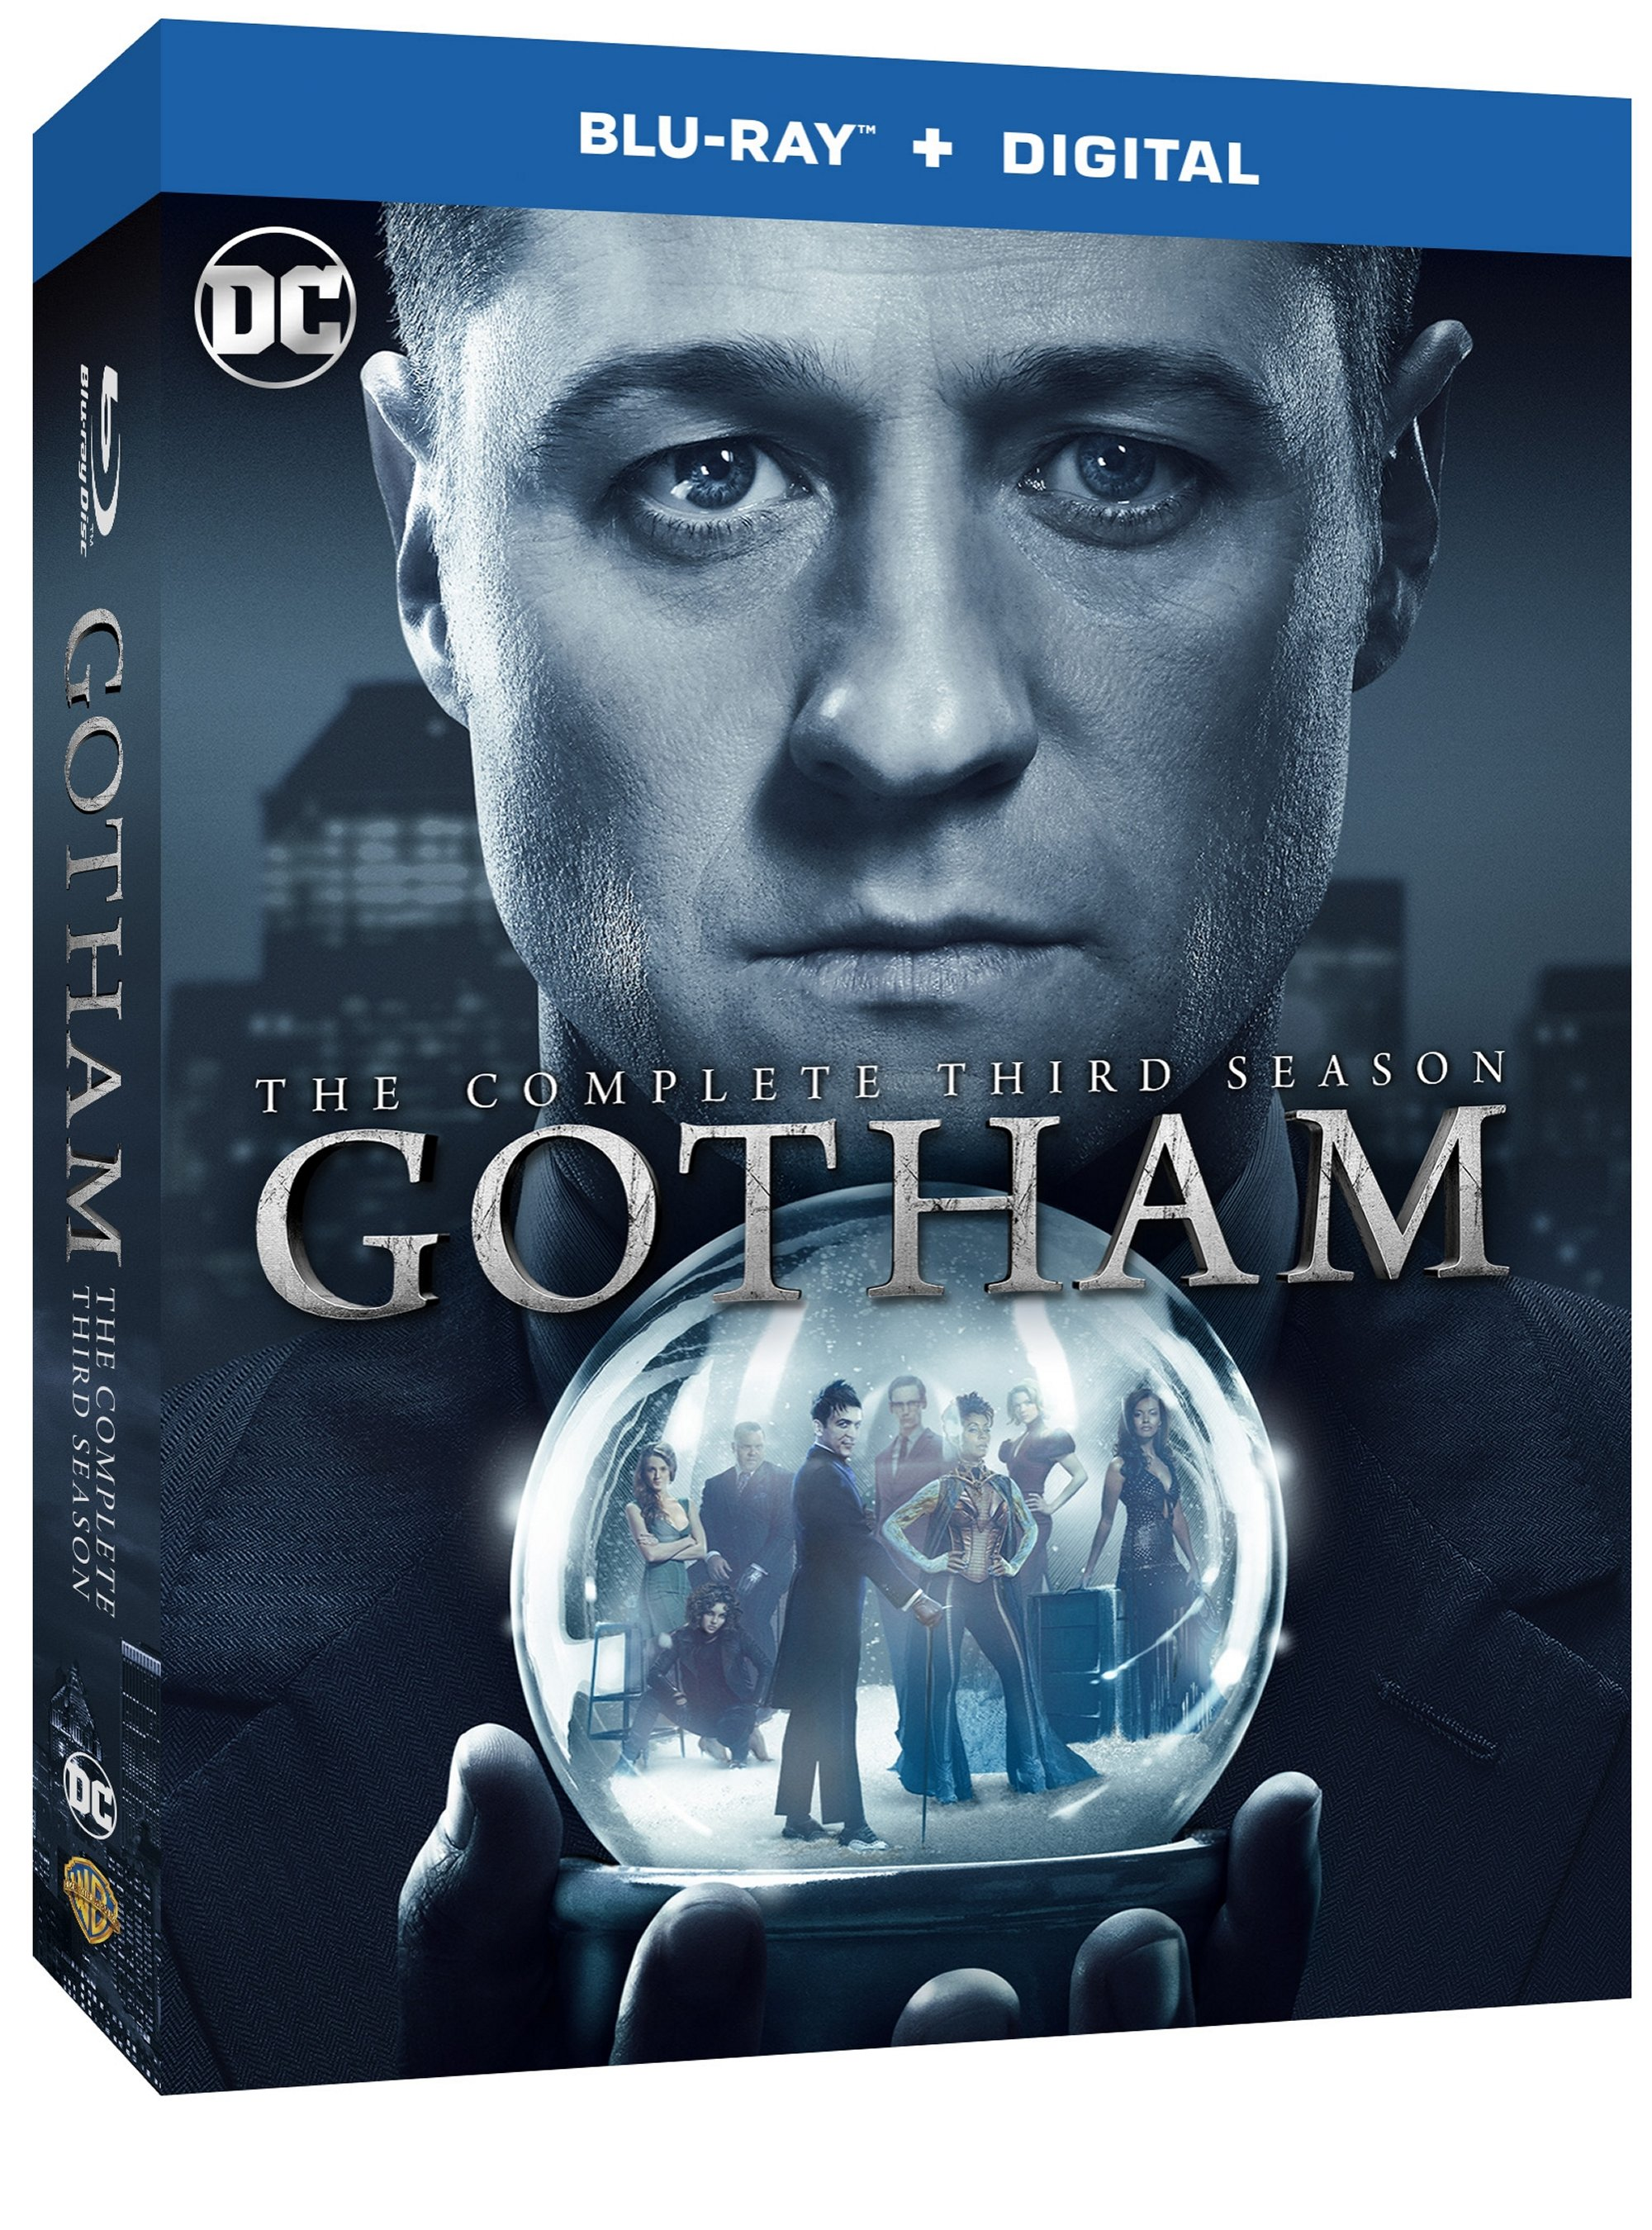 GOTHAM SEASON THREE Blu-ray